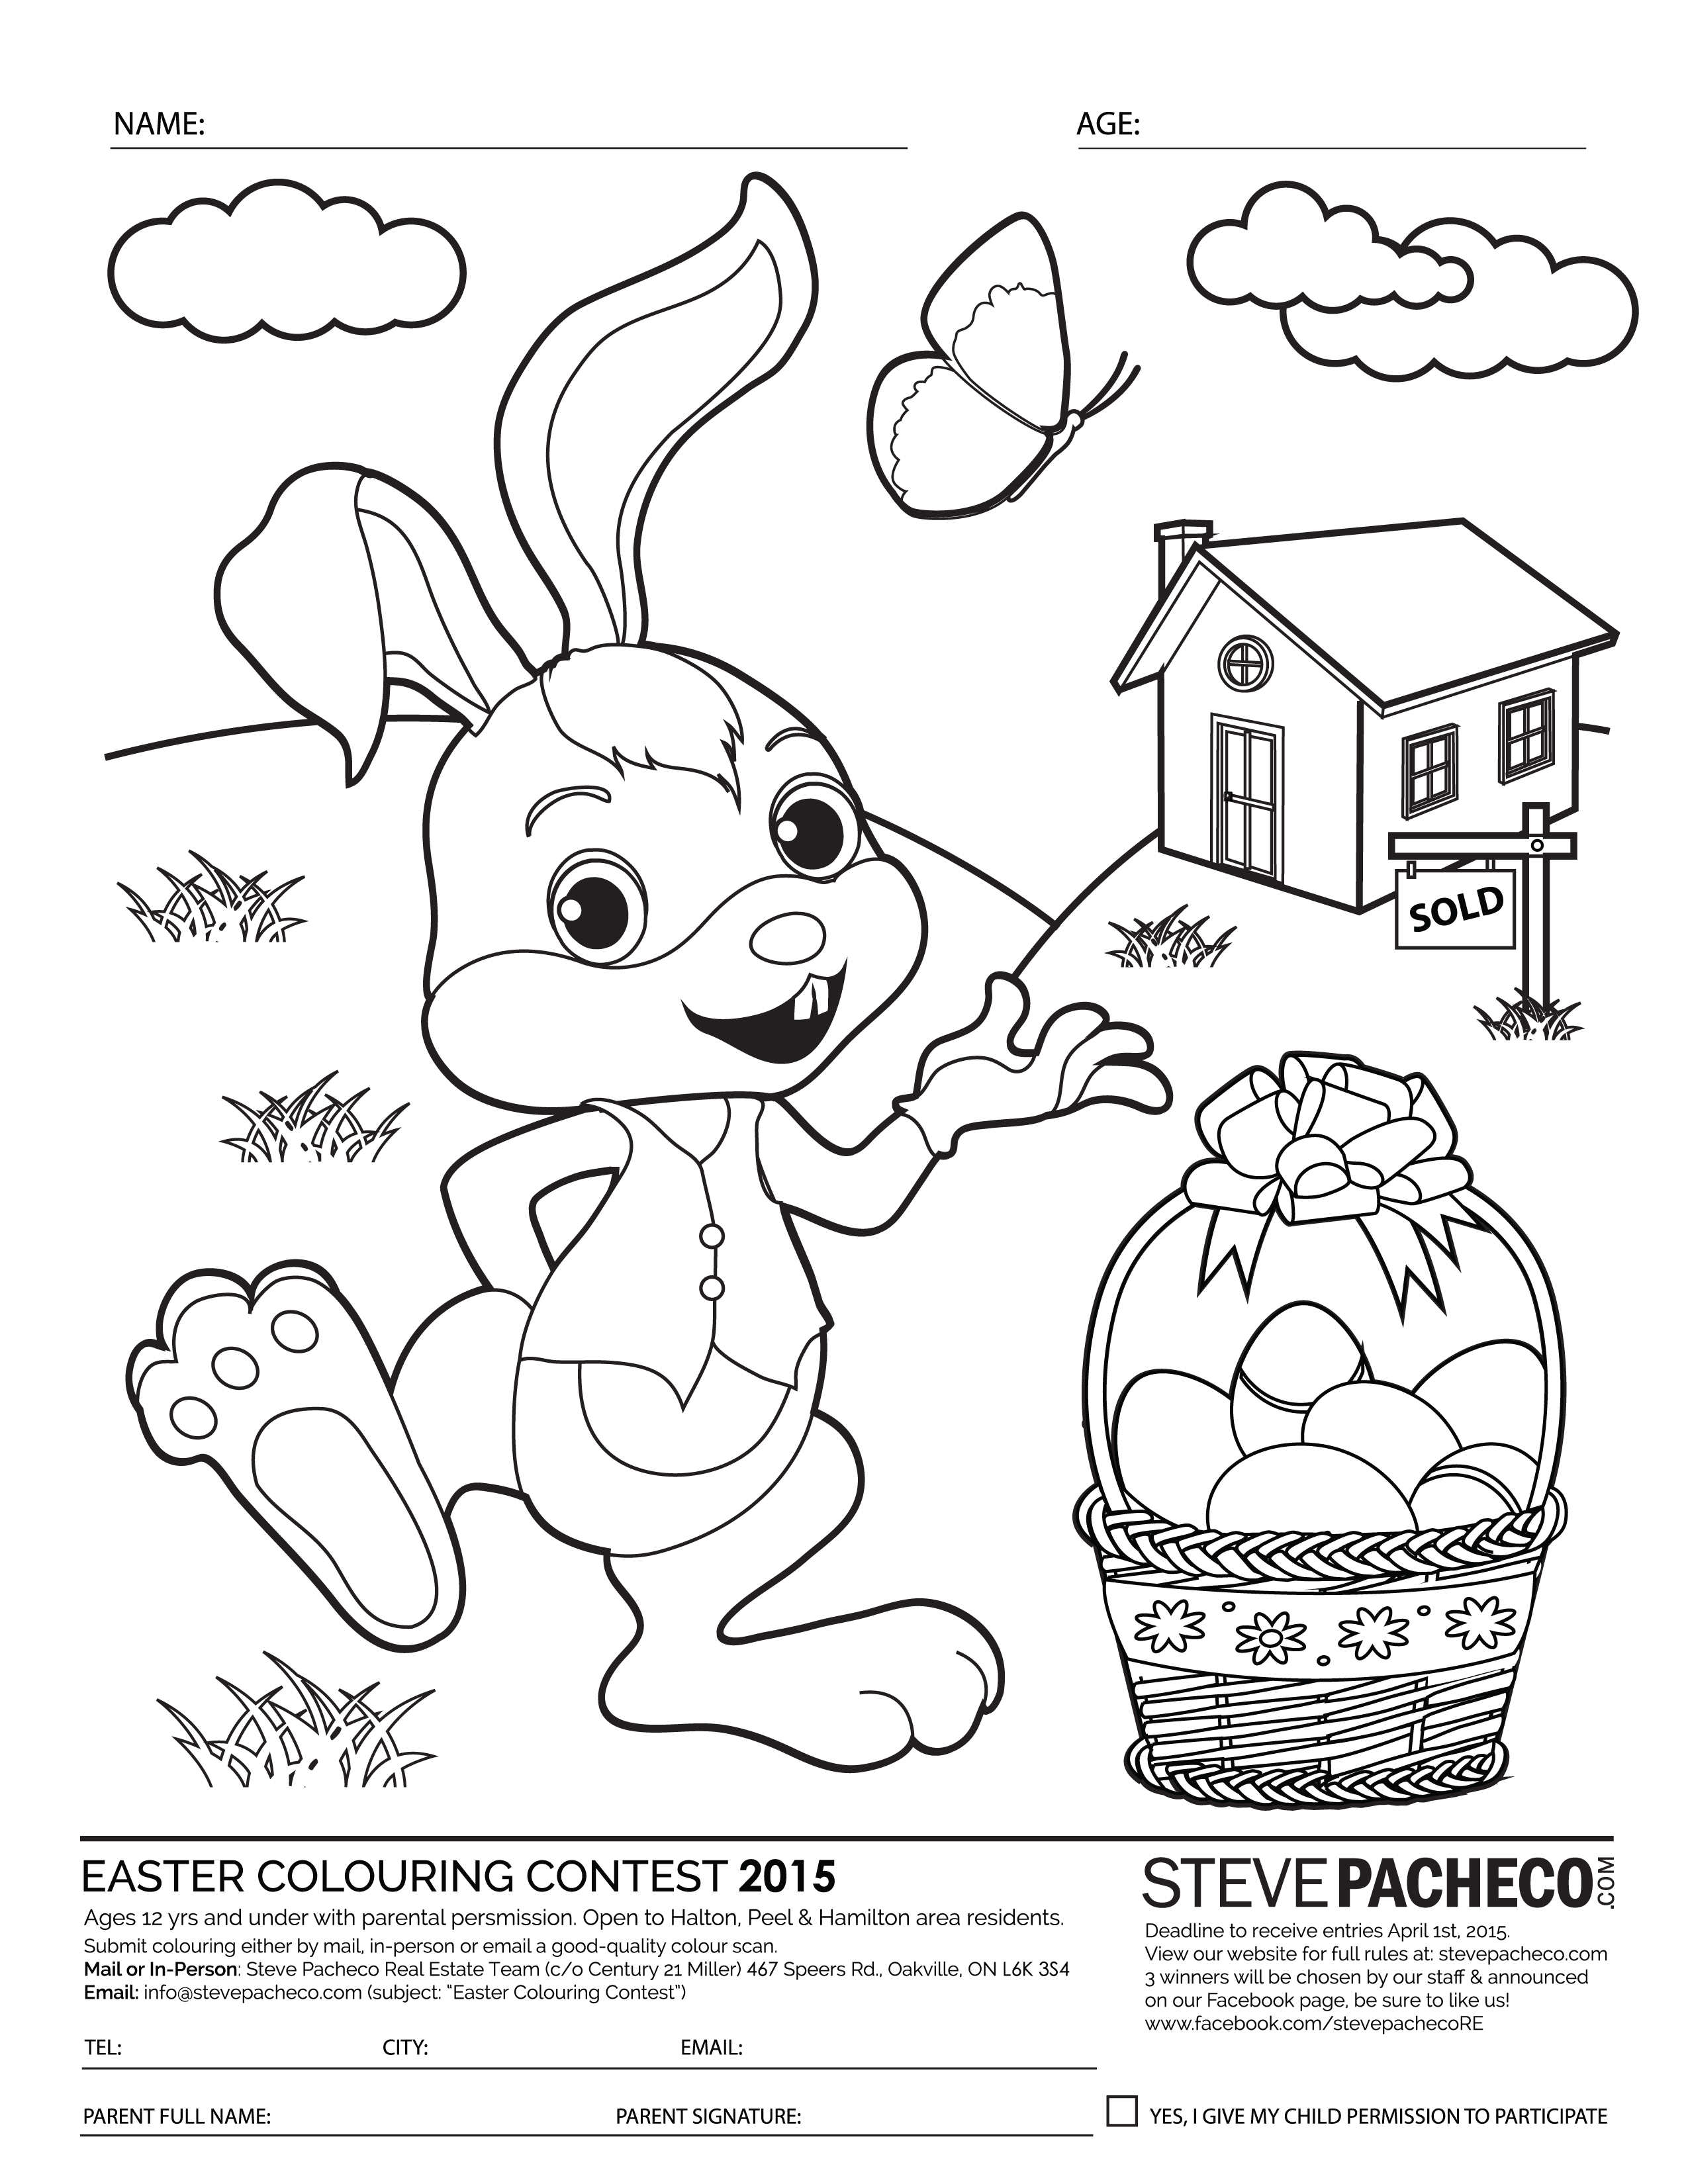 Easter Colouring Contest 2015. Contest open to children